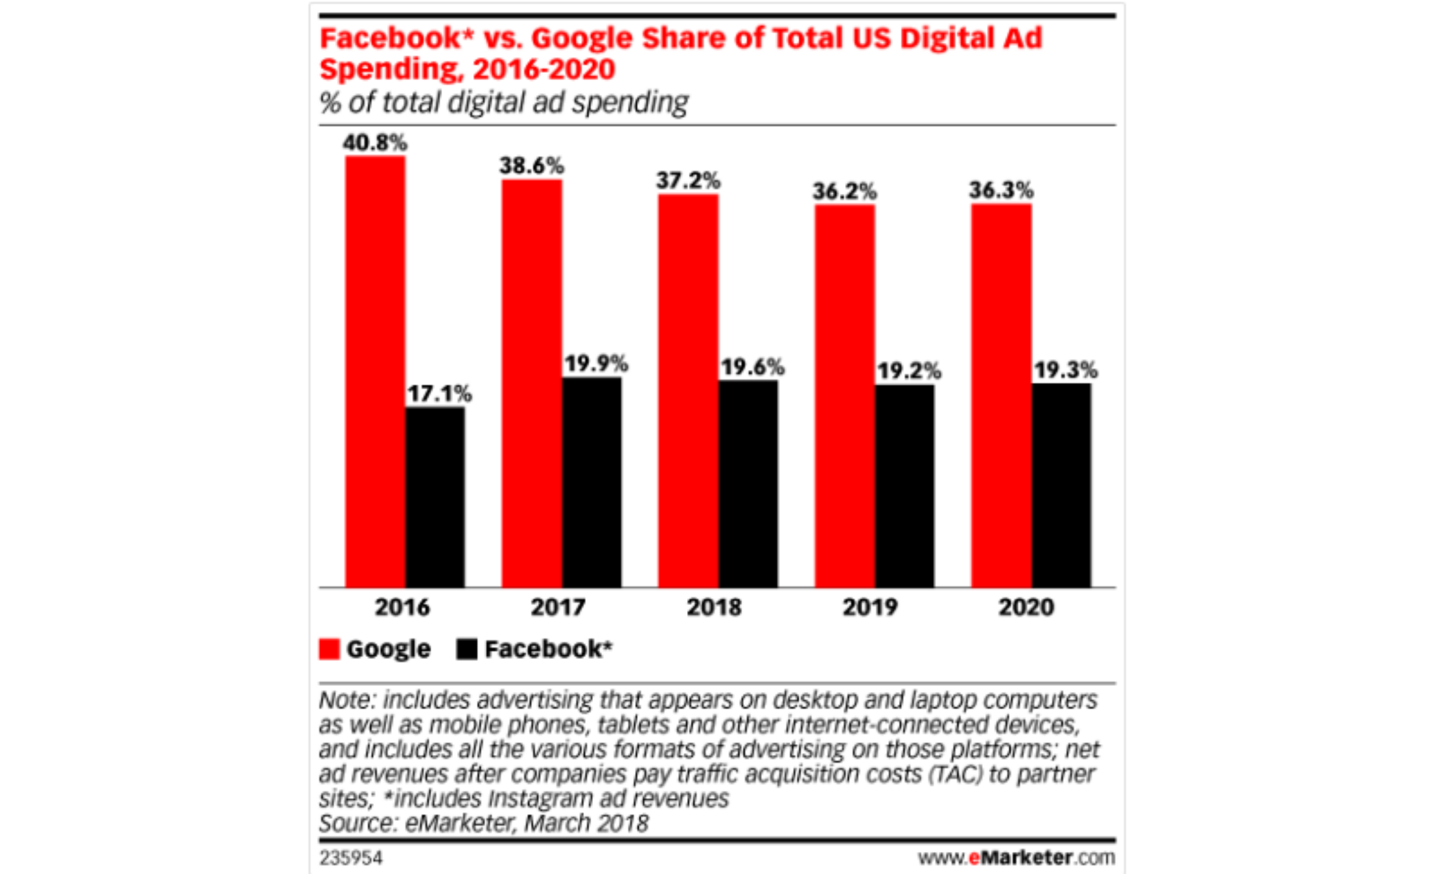 Graph showing Facebook vs Google share of total US digital ad spending 2016-2020